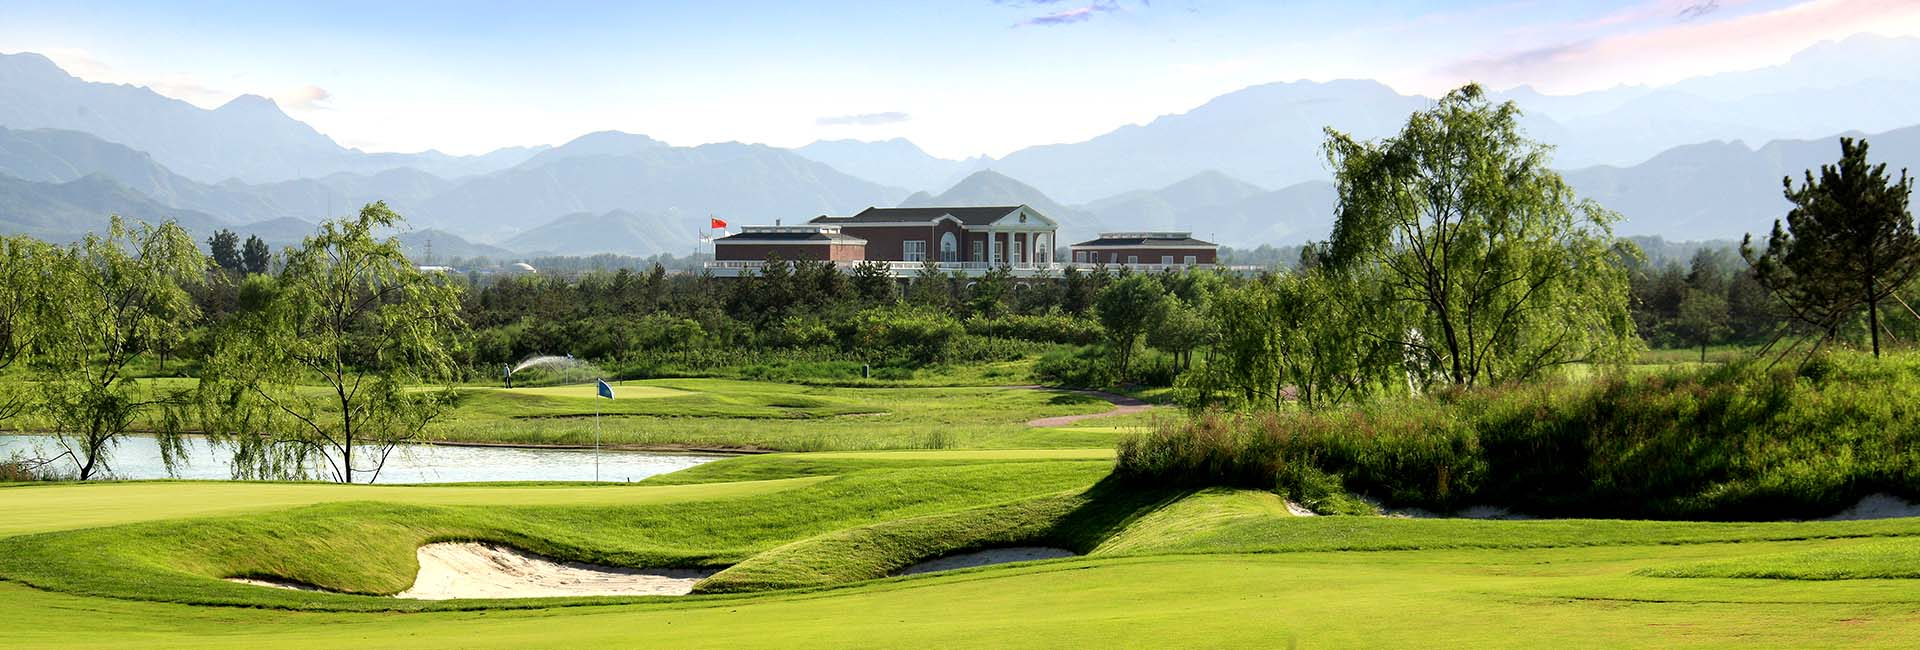 Pine Valley Golf and Country Club | Nicklaus Design